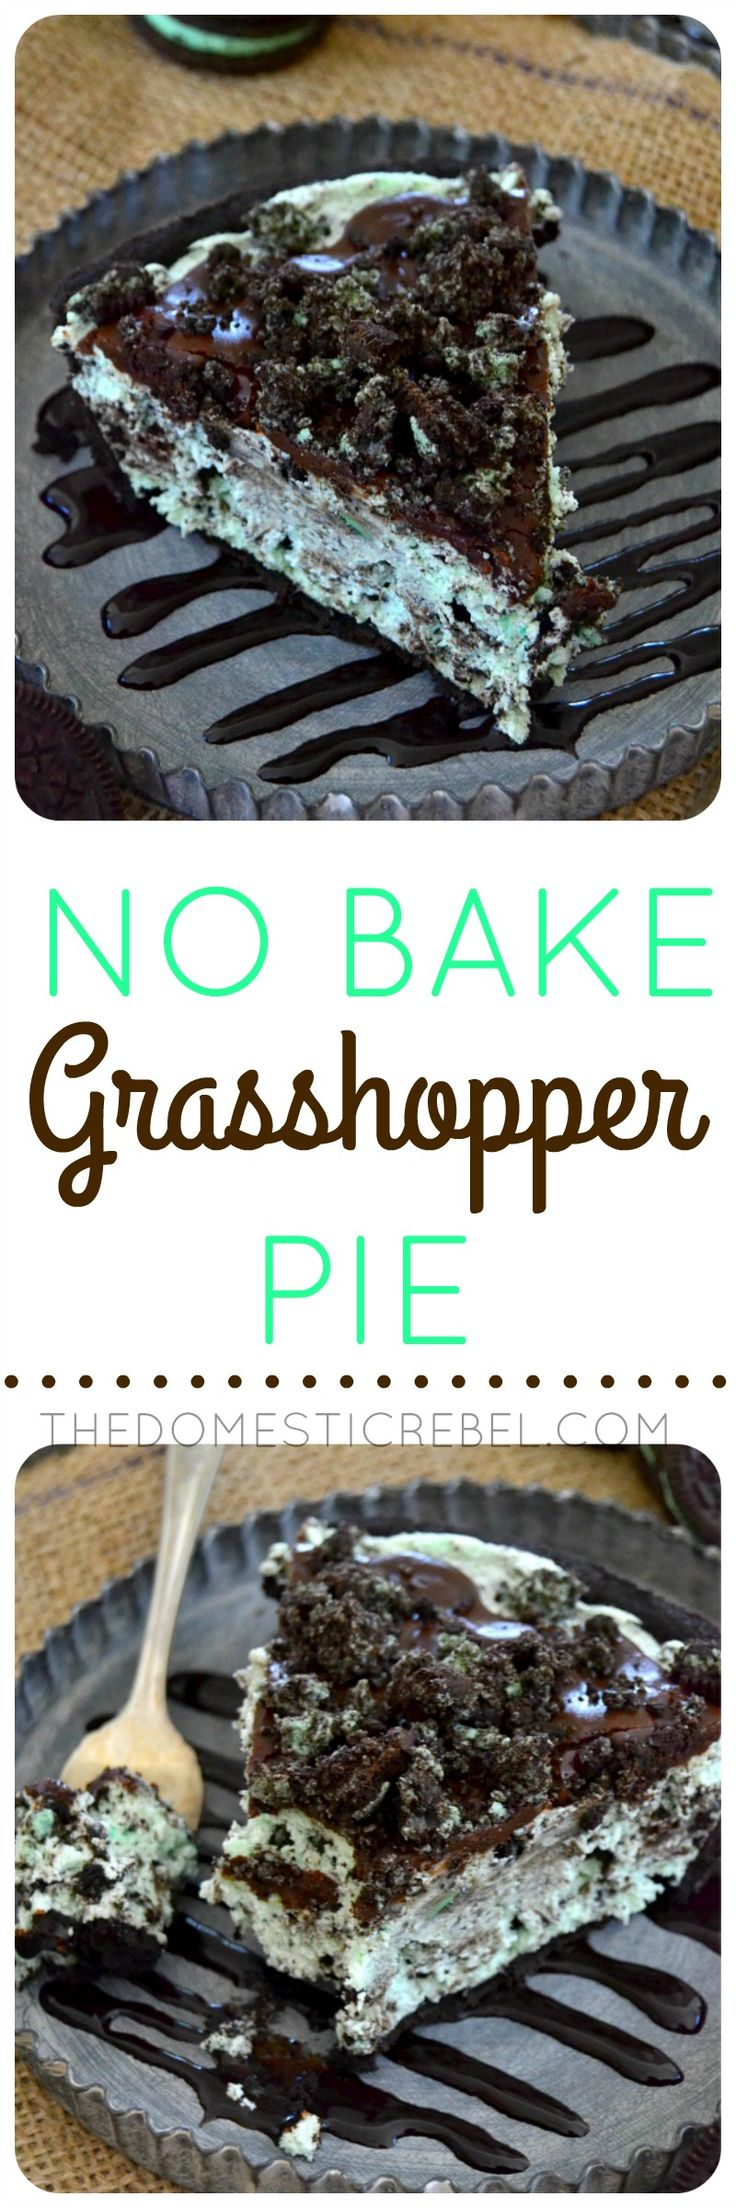 No Bake Grasshopper Pie | The Domestic Rebel | this is SO easy, SO creamy and SO fluffy! Packed with bright mint flavor, Oreo pieces and a chocolate ganache topping that's to die for!